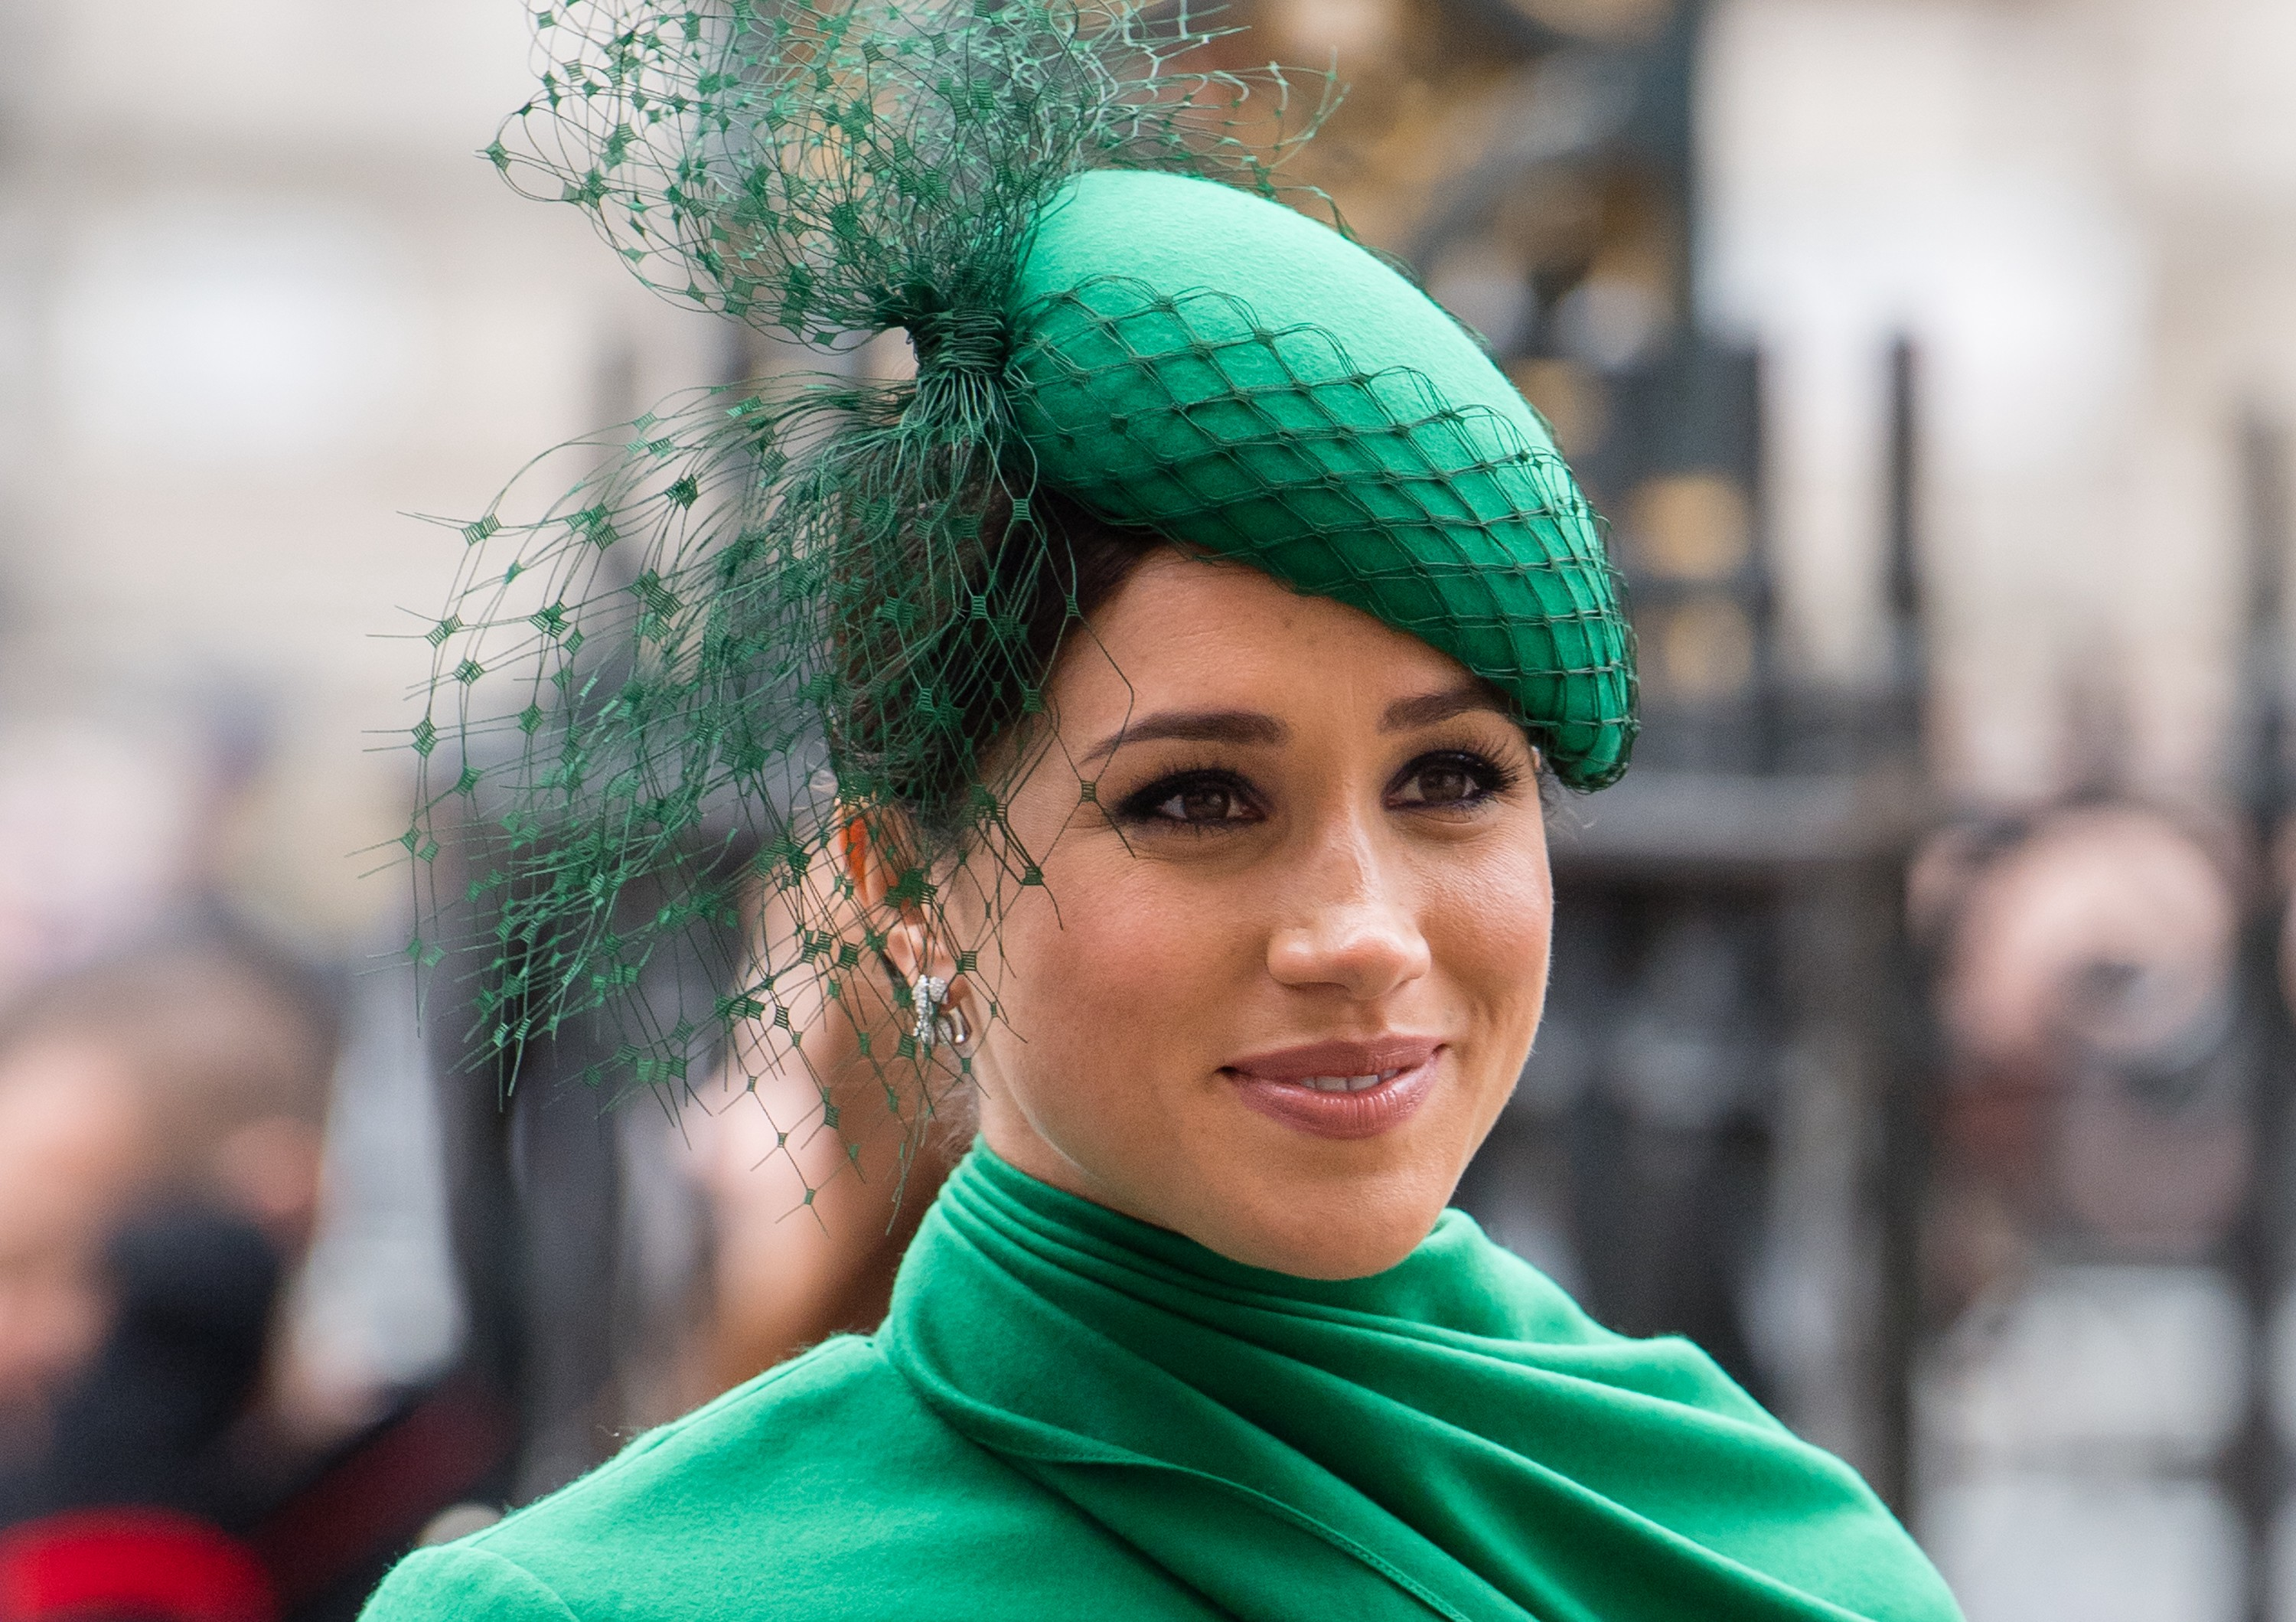 Meghan, Duchess of Sussex, at a public event wearing a green outfit with matching hat.